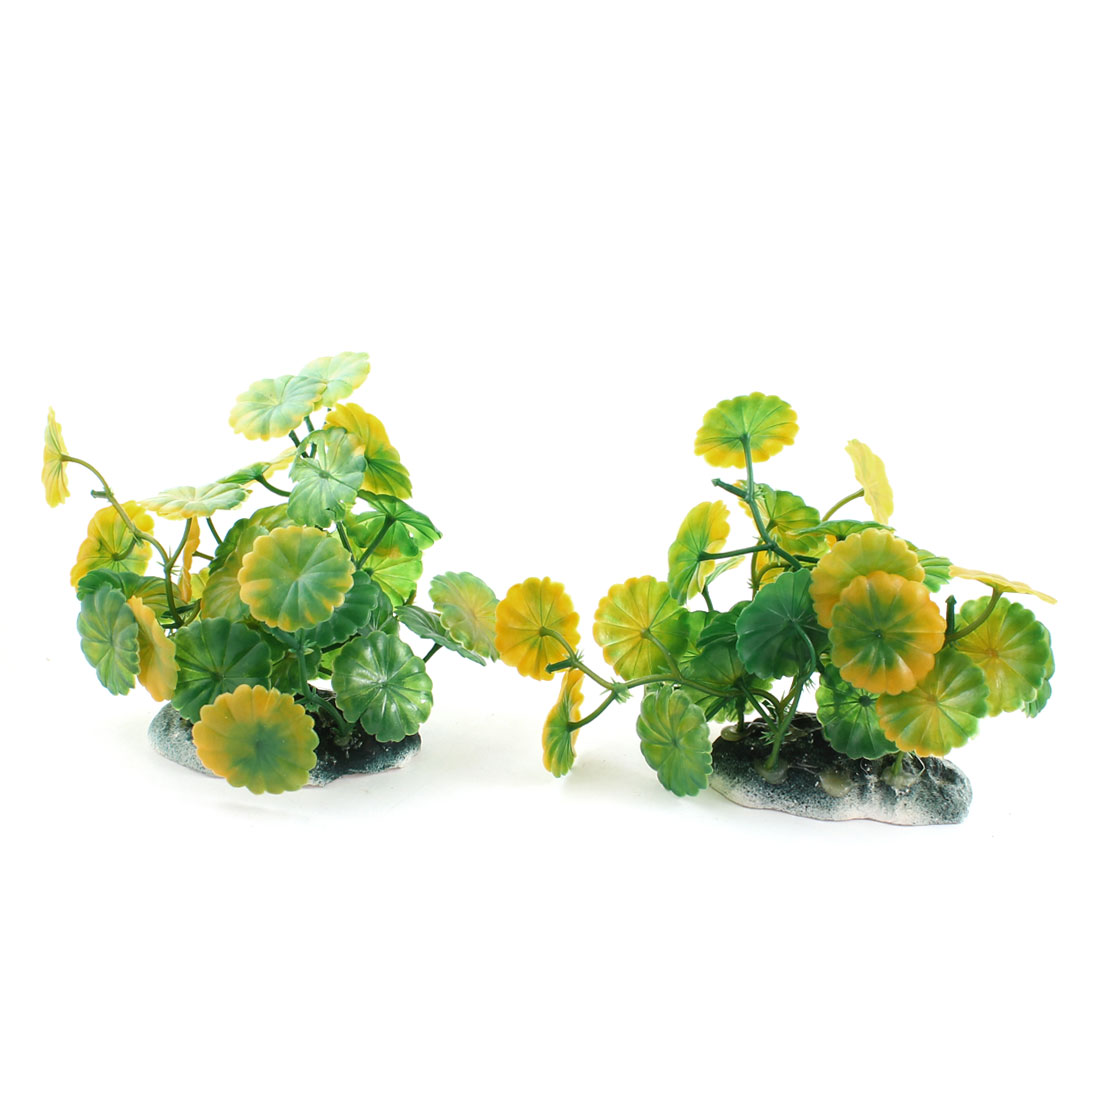 "Aquarium Fish Tank Decor Simulation Underwater Plant Green Yellow 3"" High 2 Pcs"